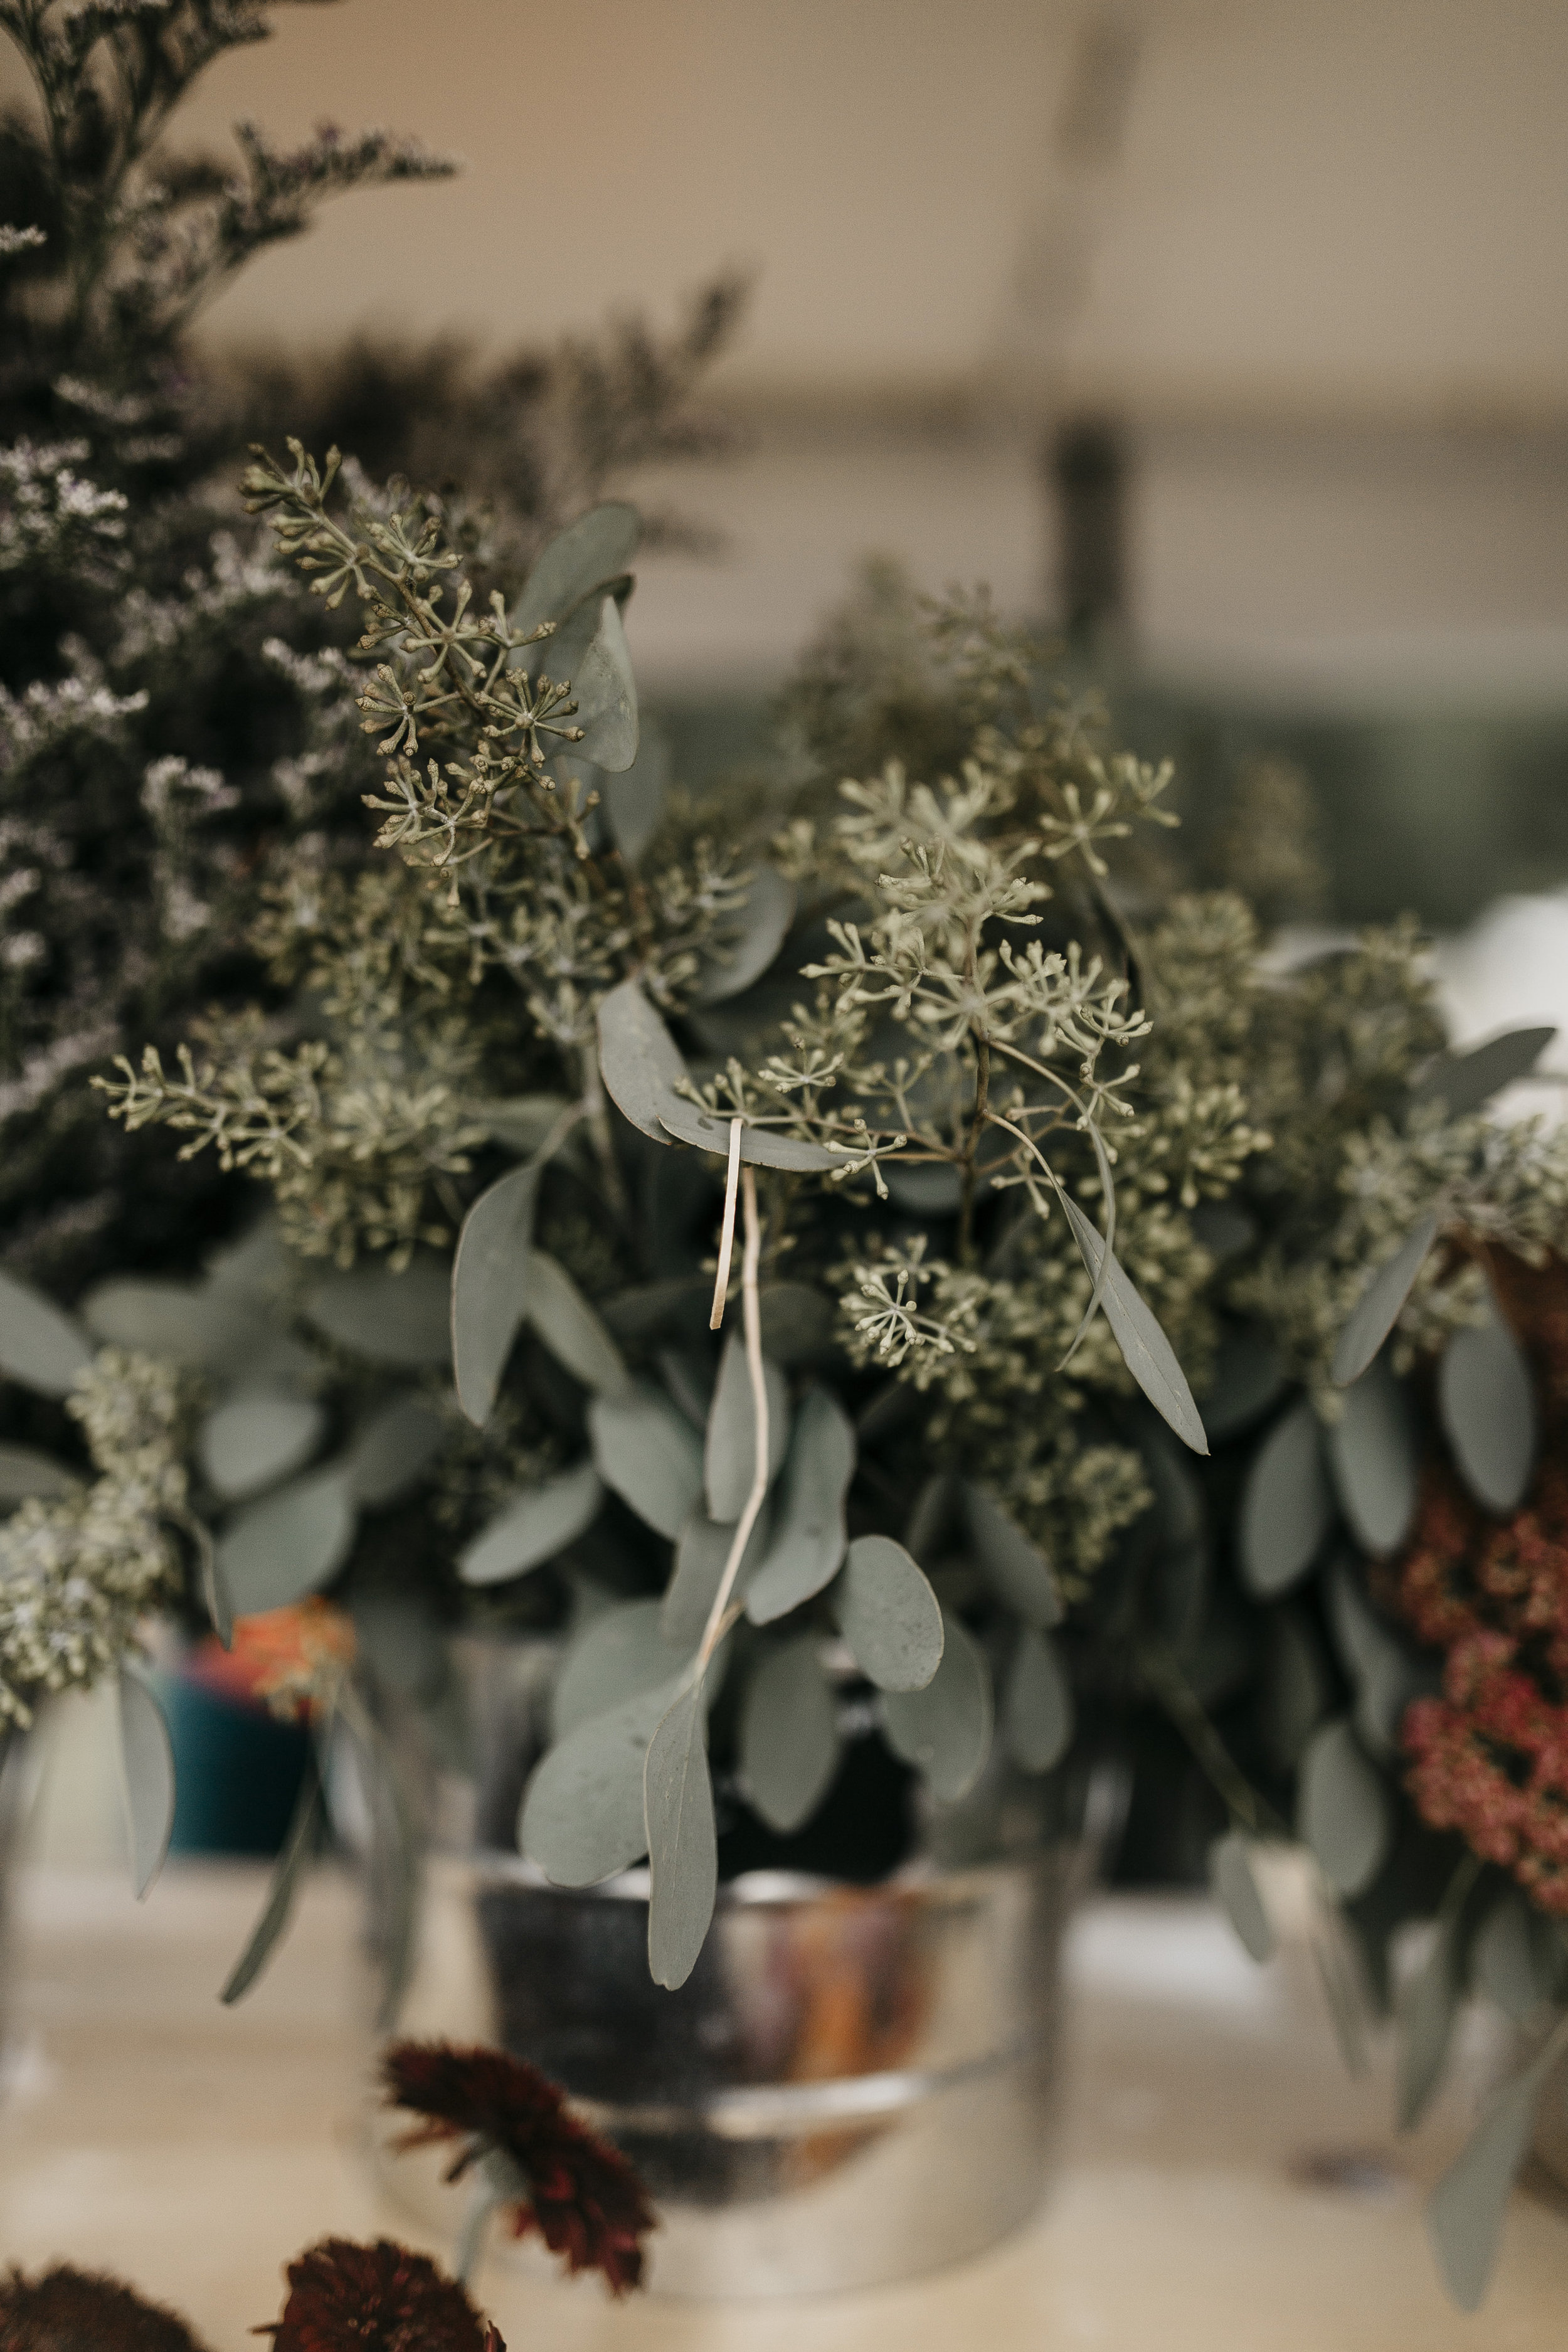 Seeded Eucalyptus   Greenery is basically an essential. Seeded eucalyptus provides a green color while also providing volume to a bouquet with it's seeds. Seeded Eucalyptus is great to use in arrangements as a filler and element of green.